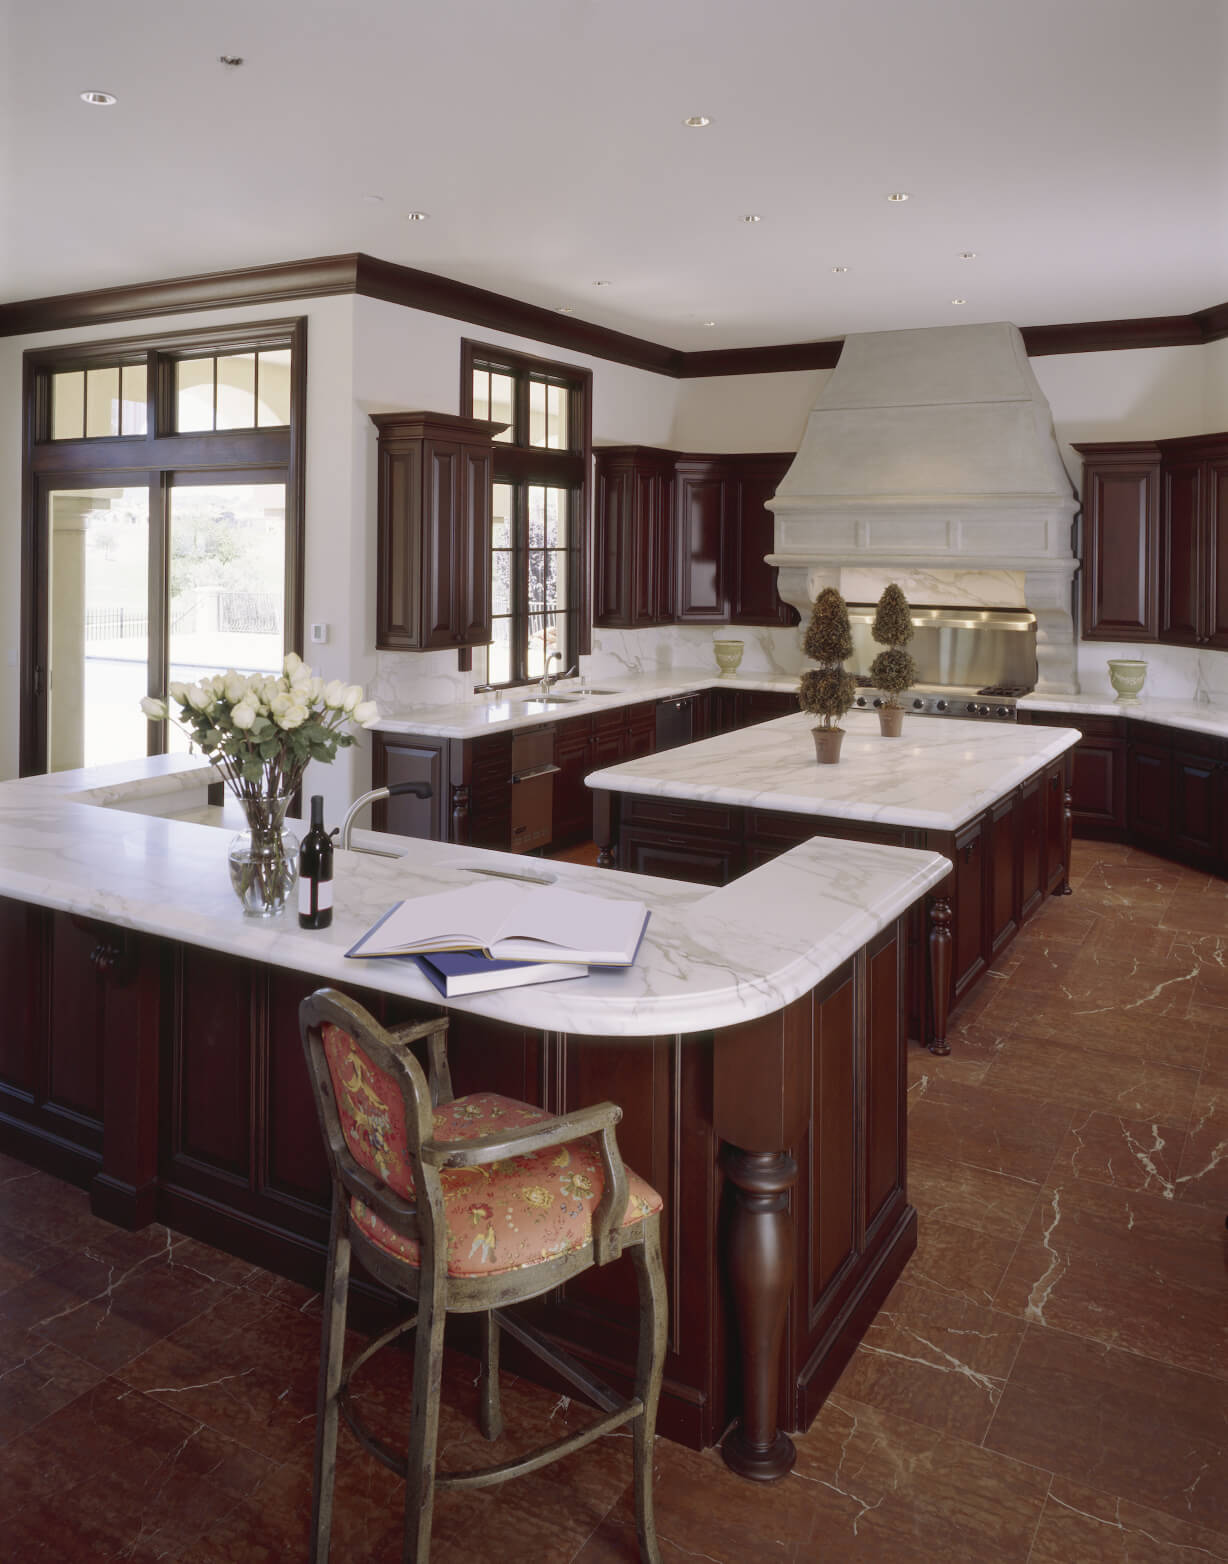 deep reddish brown marble flooring is paired with darker wood cabinetry under white marble countertops and awesome white brown wood